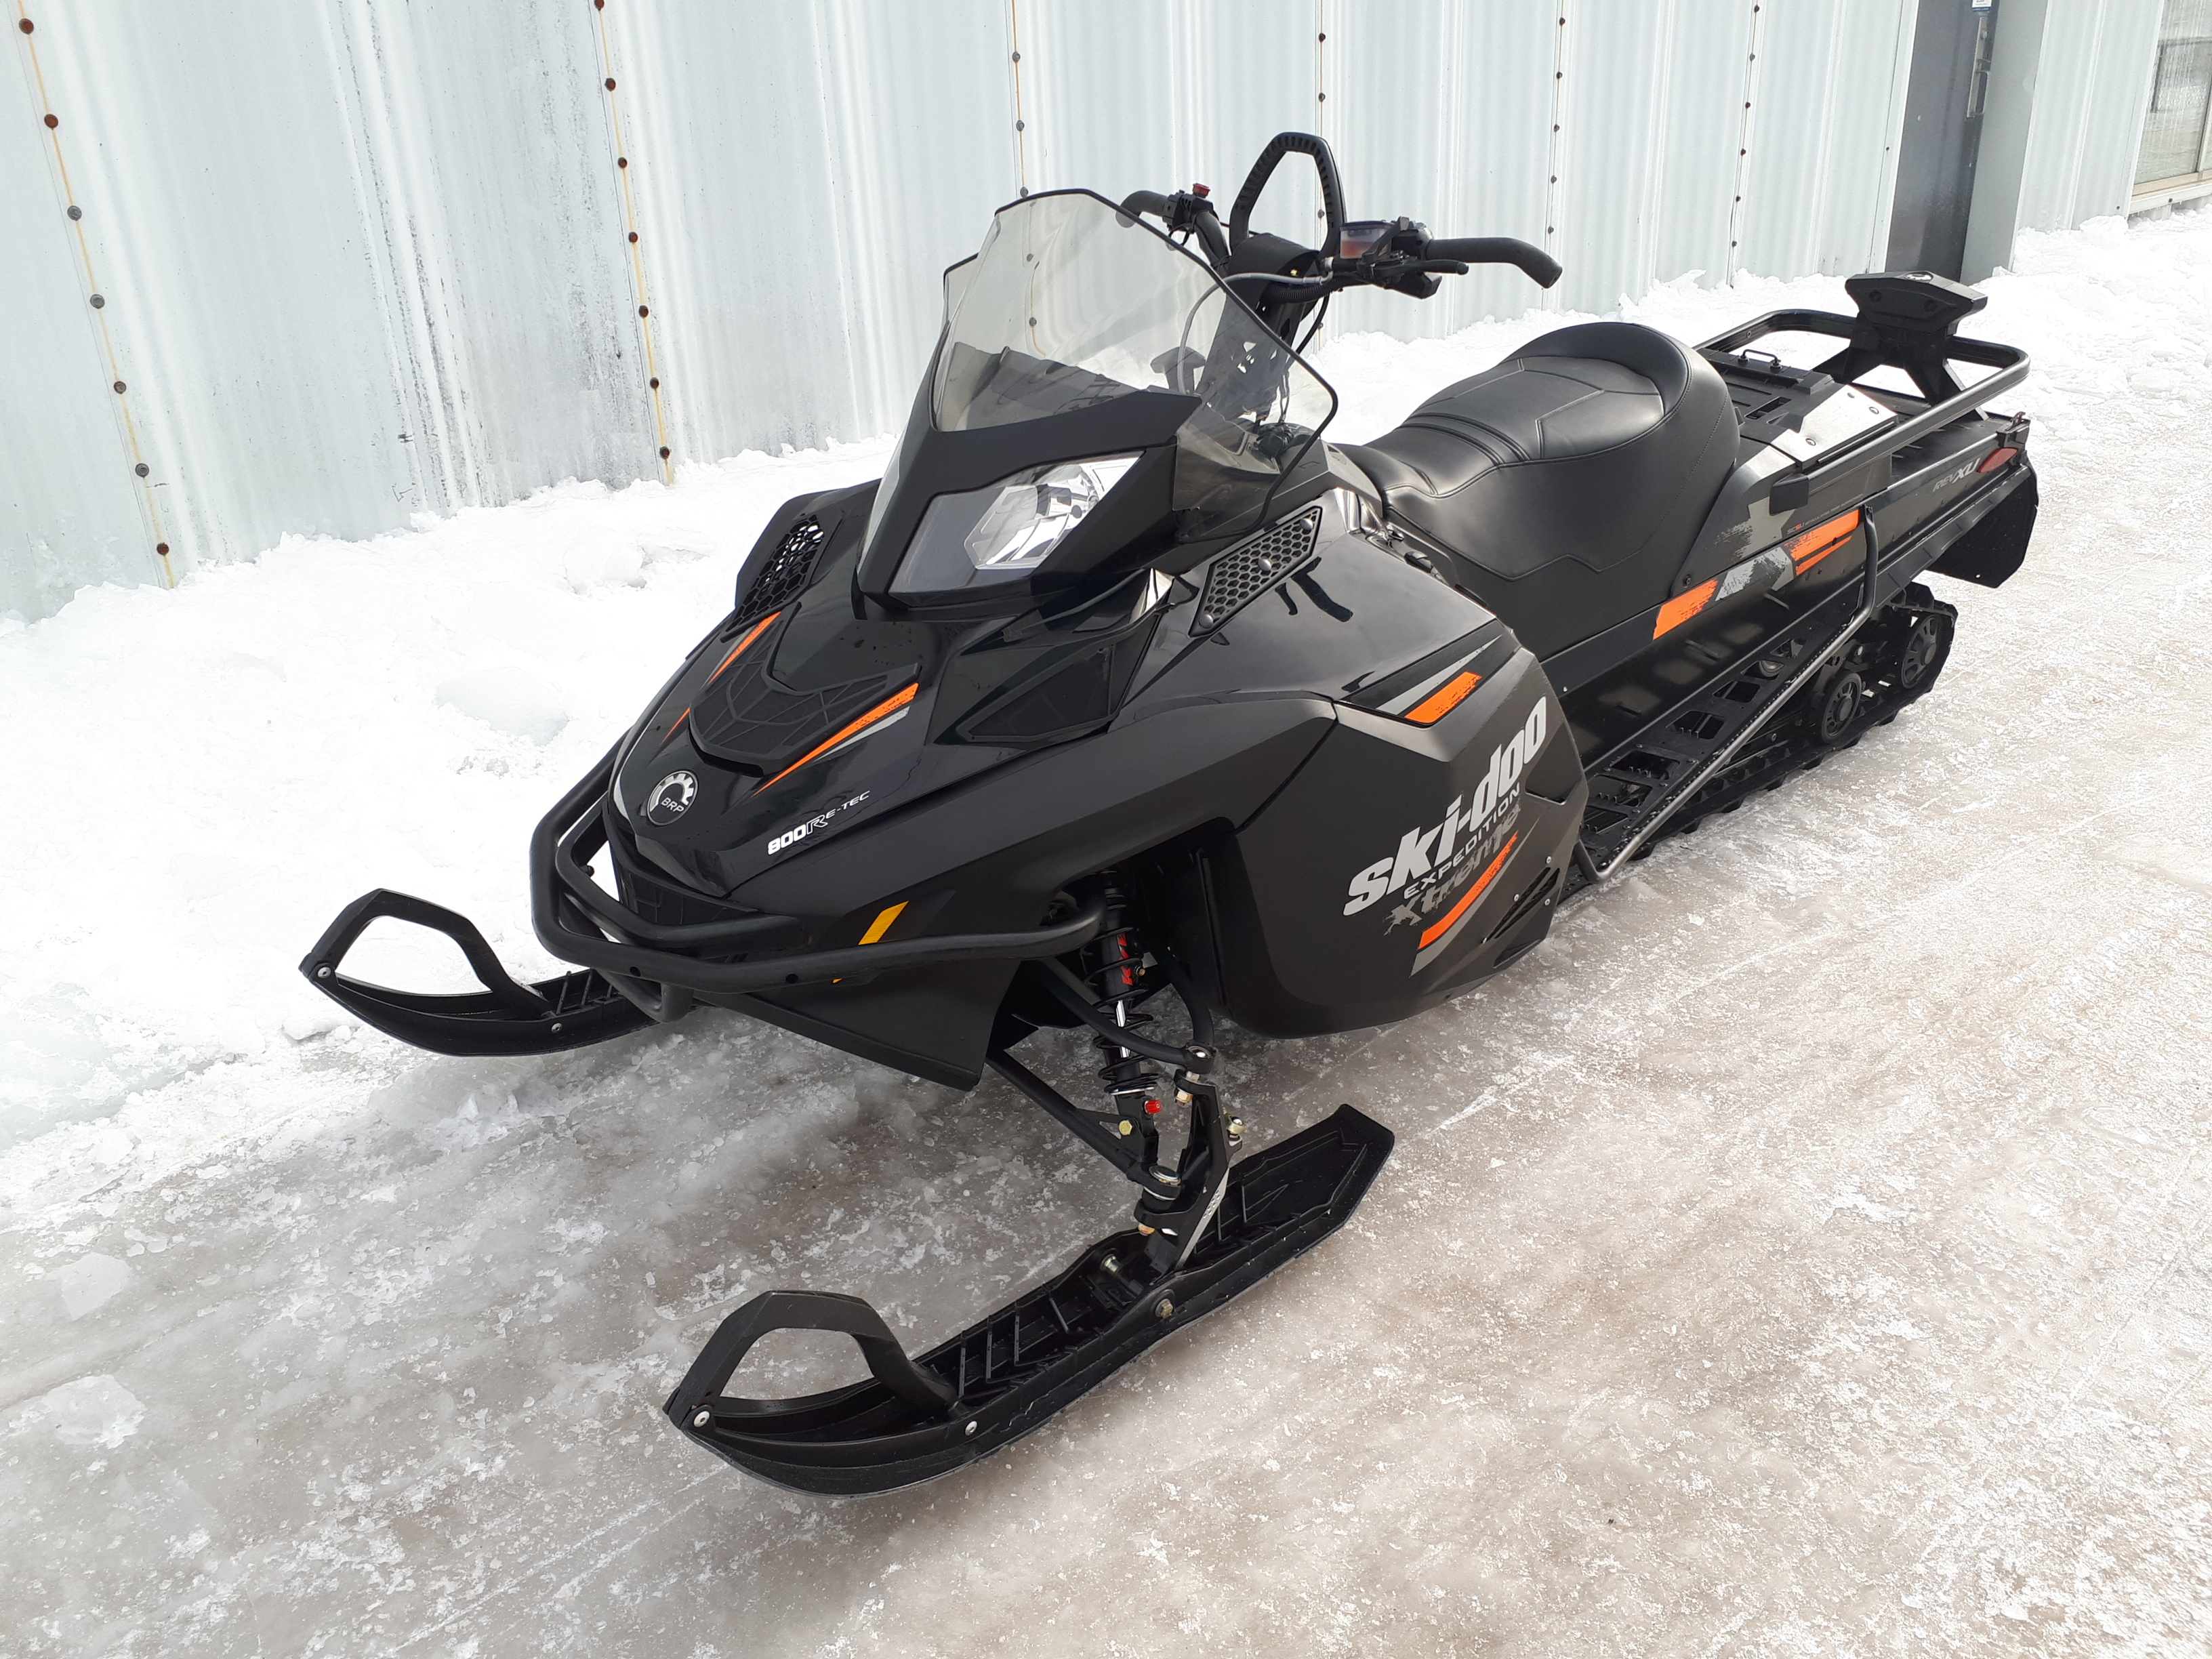 Ski-Doo Expedition Extreme 2016